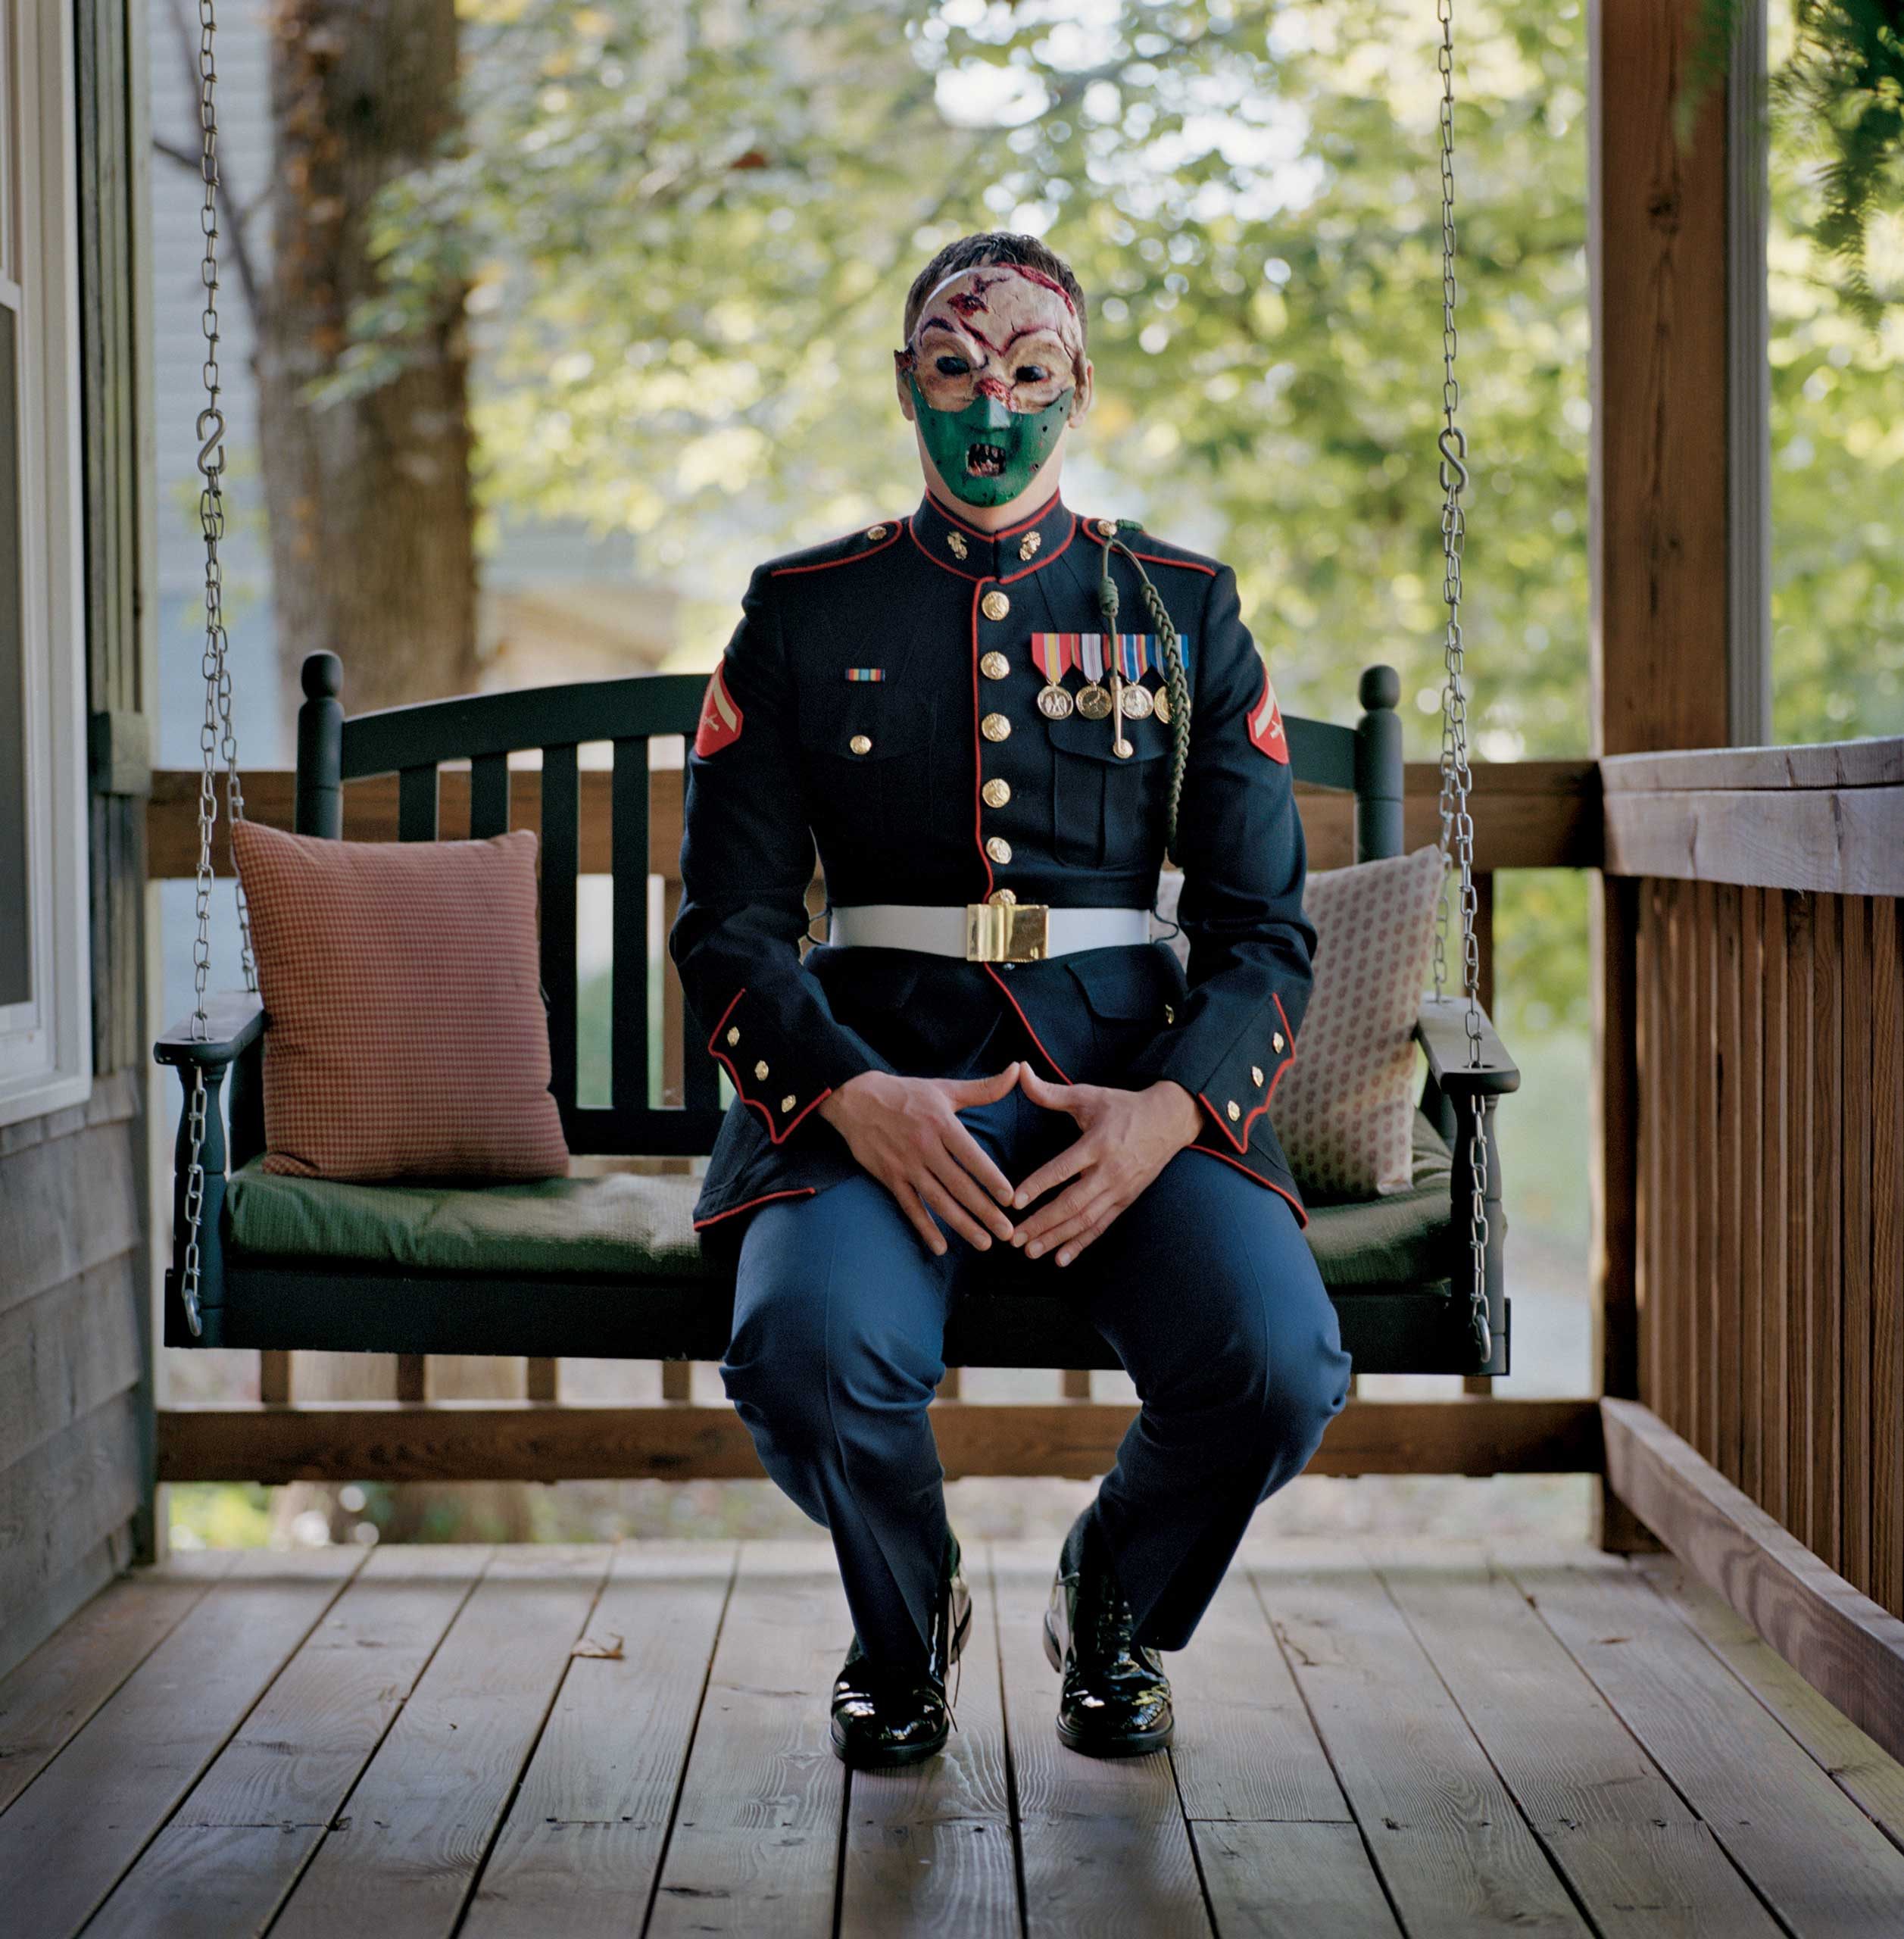 """From the January issue of National Geographic magazine: Healing Soldiers                               Marine Cpl. Chris McNair (Ret.)                               Afghanistan 2011-12                               Impeccable in his Marine uniform and outwardly composed, McNair sits on the porch of his parents' home in Virginia, anonymous behind a mask he made                               in an art therapy session. """"I was just going through pictures, and I saw the mask of Hannibal Lecter, and I thought, 'That's who I am' … He's probably dangerous, and that's who I felt I was. I had this muzzle on with all these wounds, and I couldn't tell anyone about them. I couldn't express my feelings."""""""